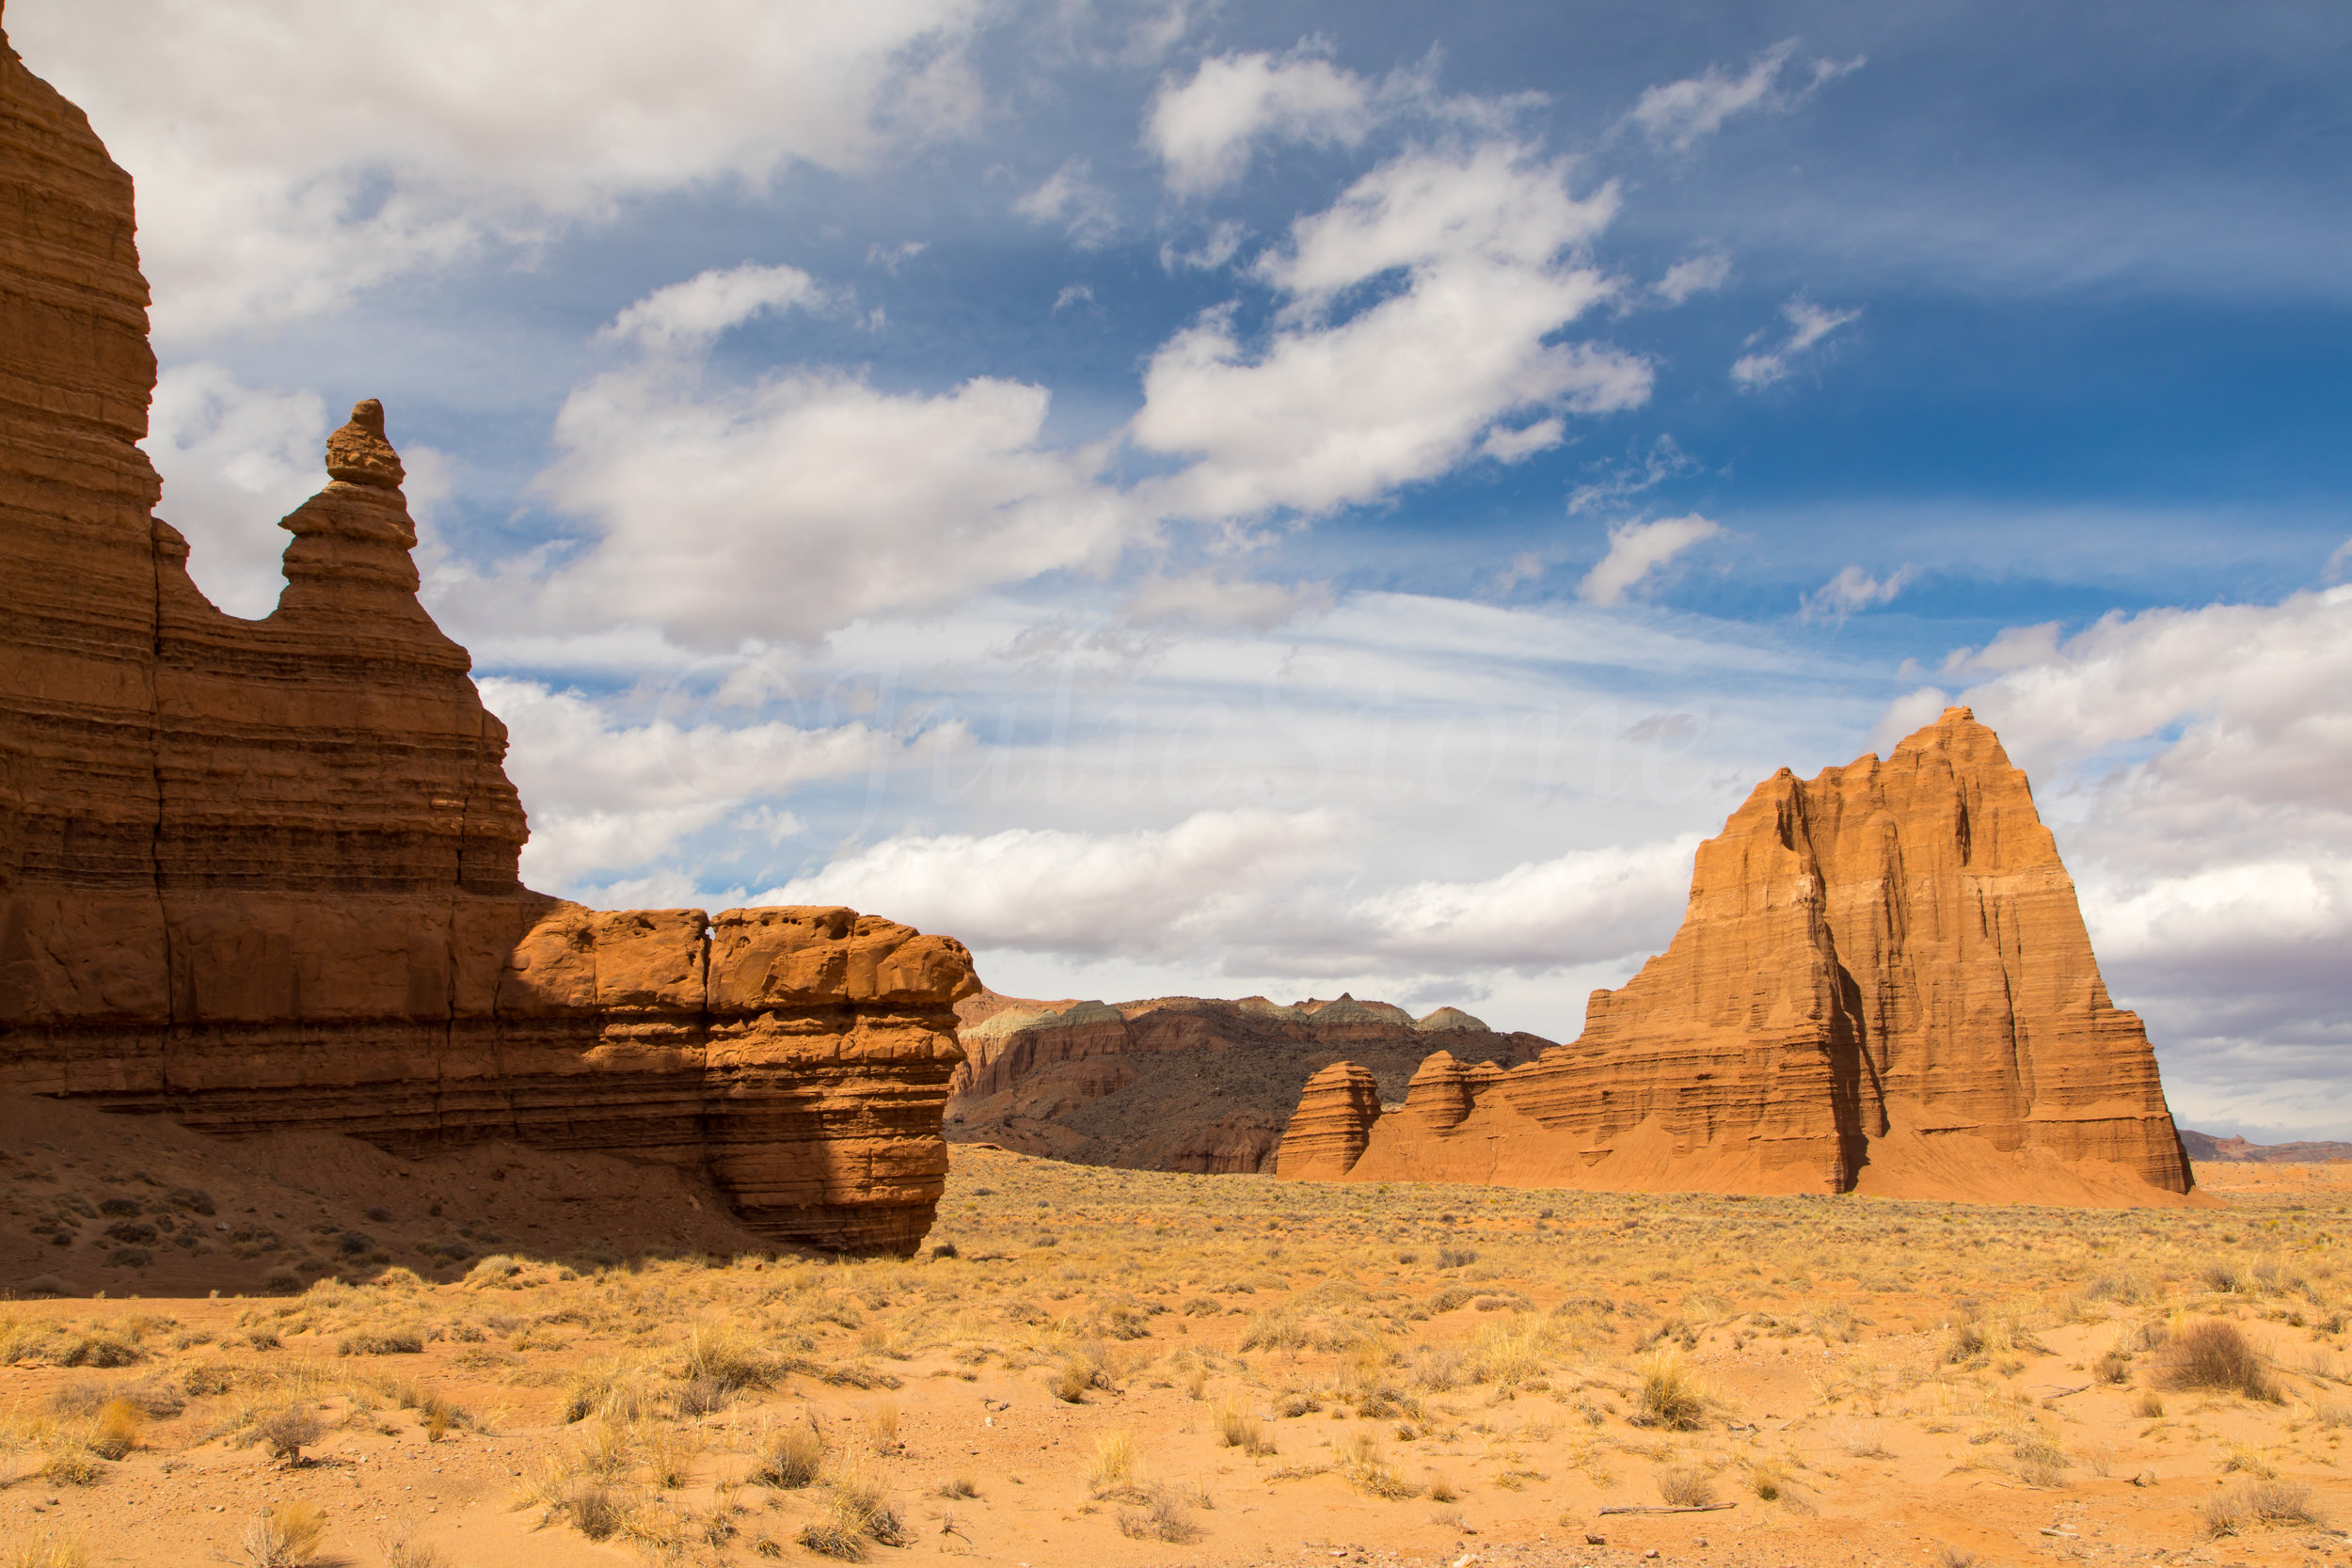 Capitol Reef National Park, Image # 2099